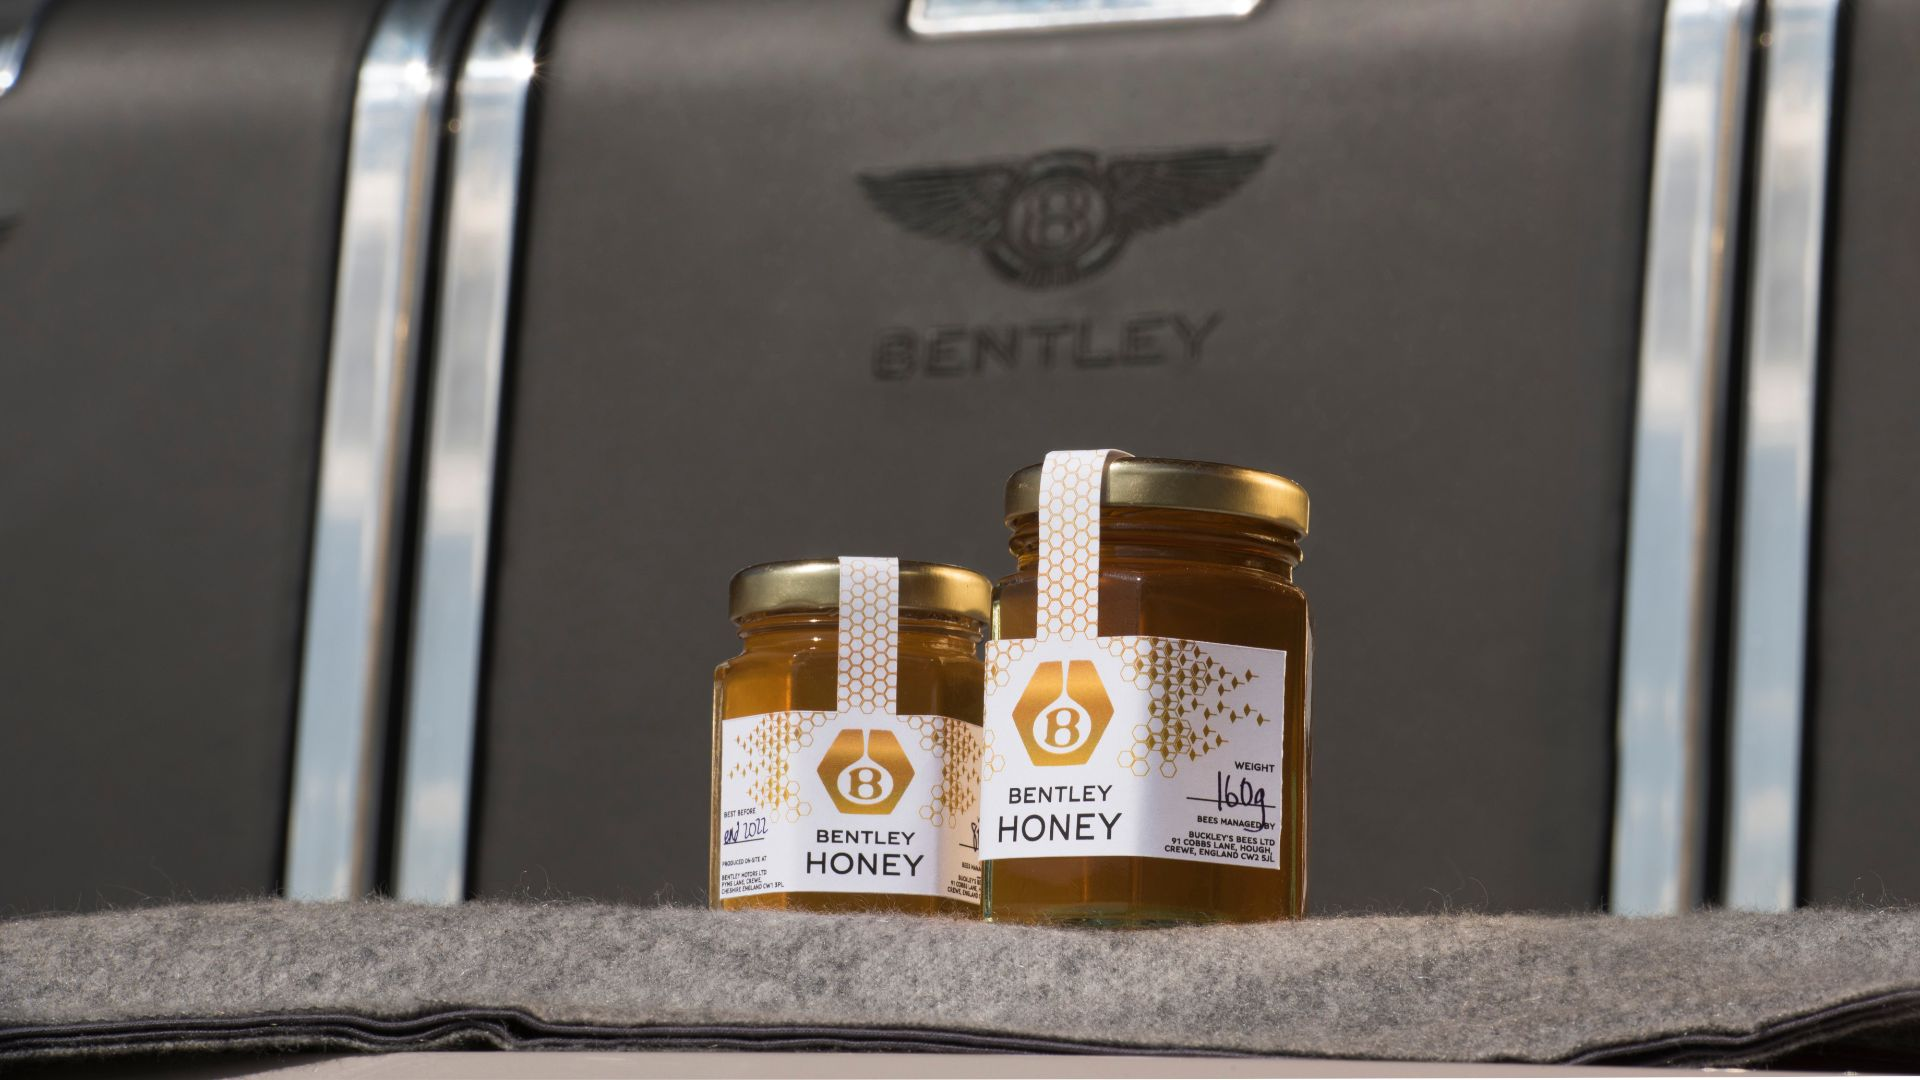 Bentley now makes honey